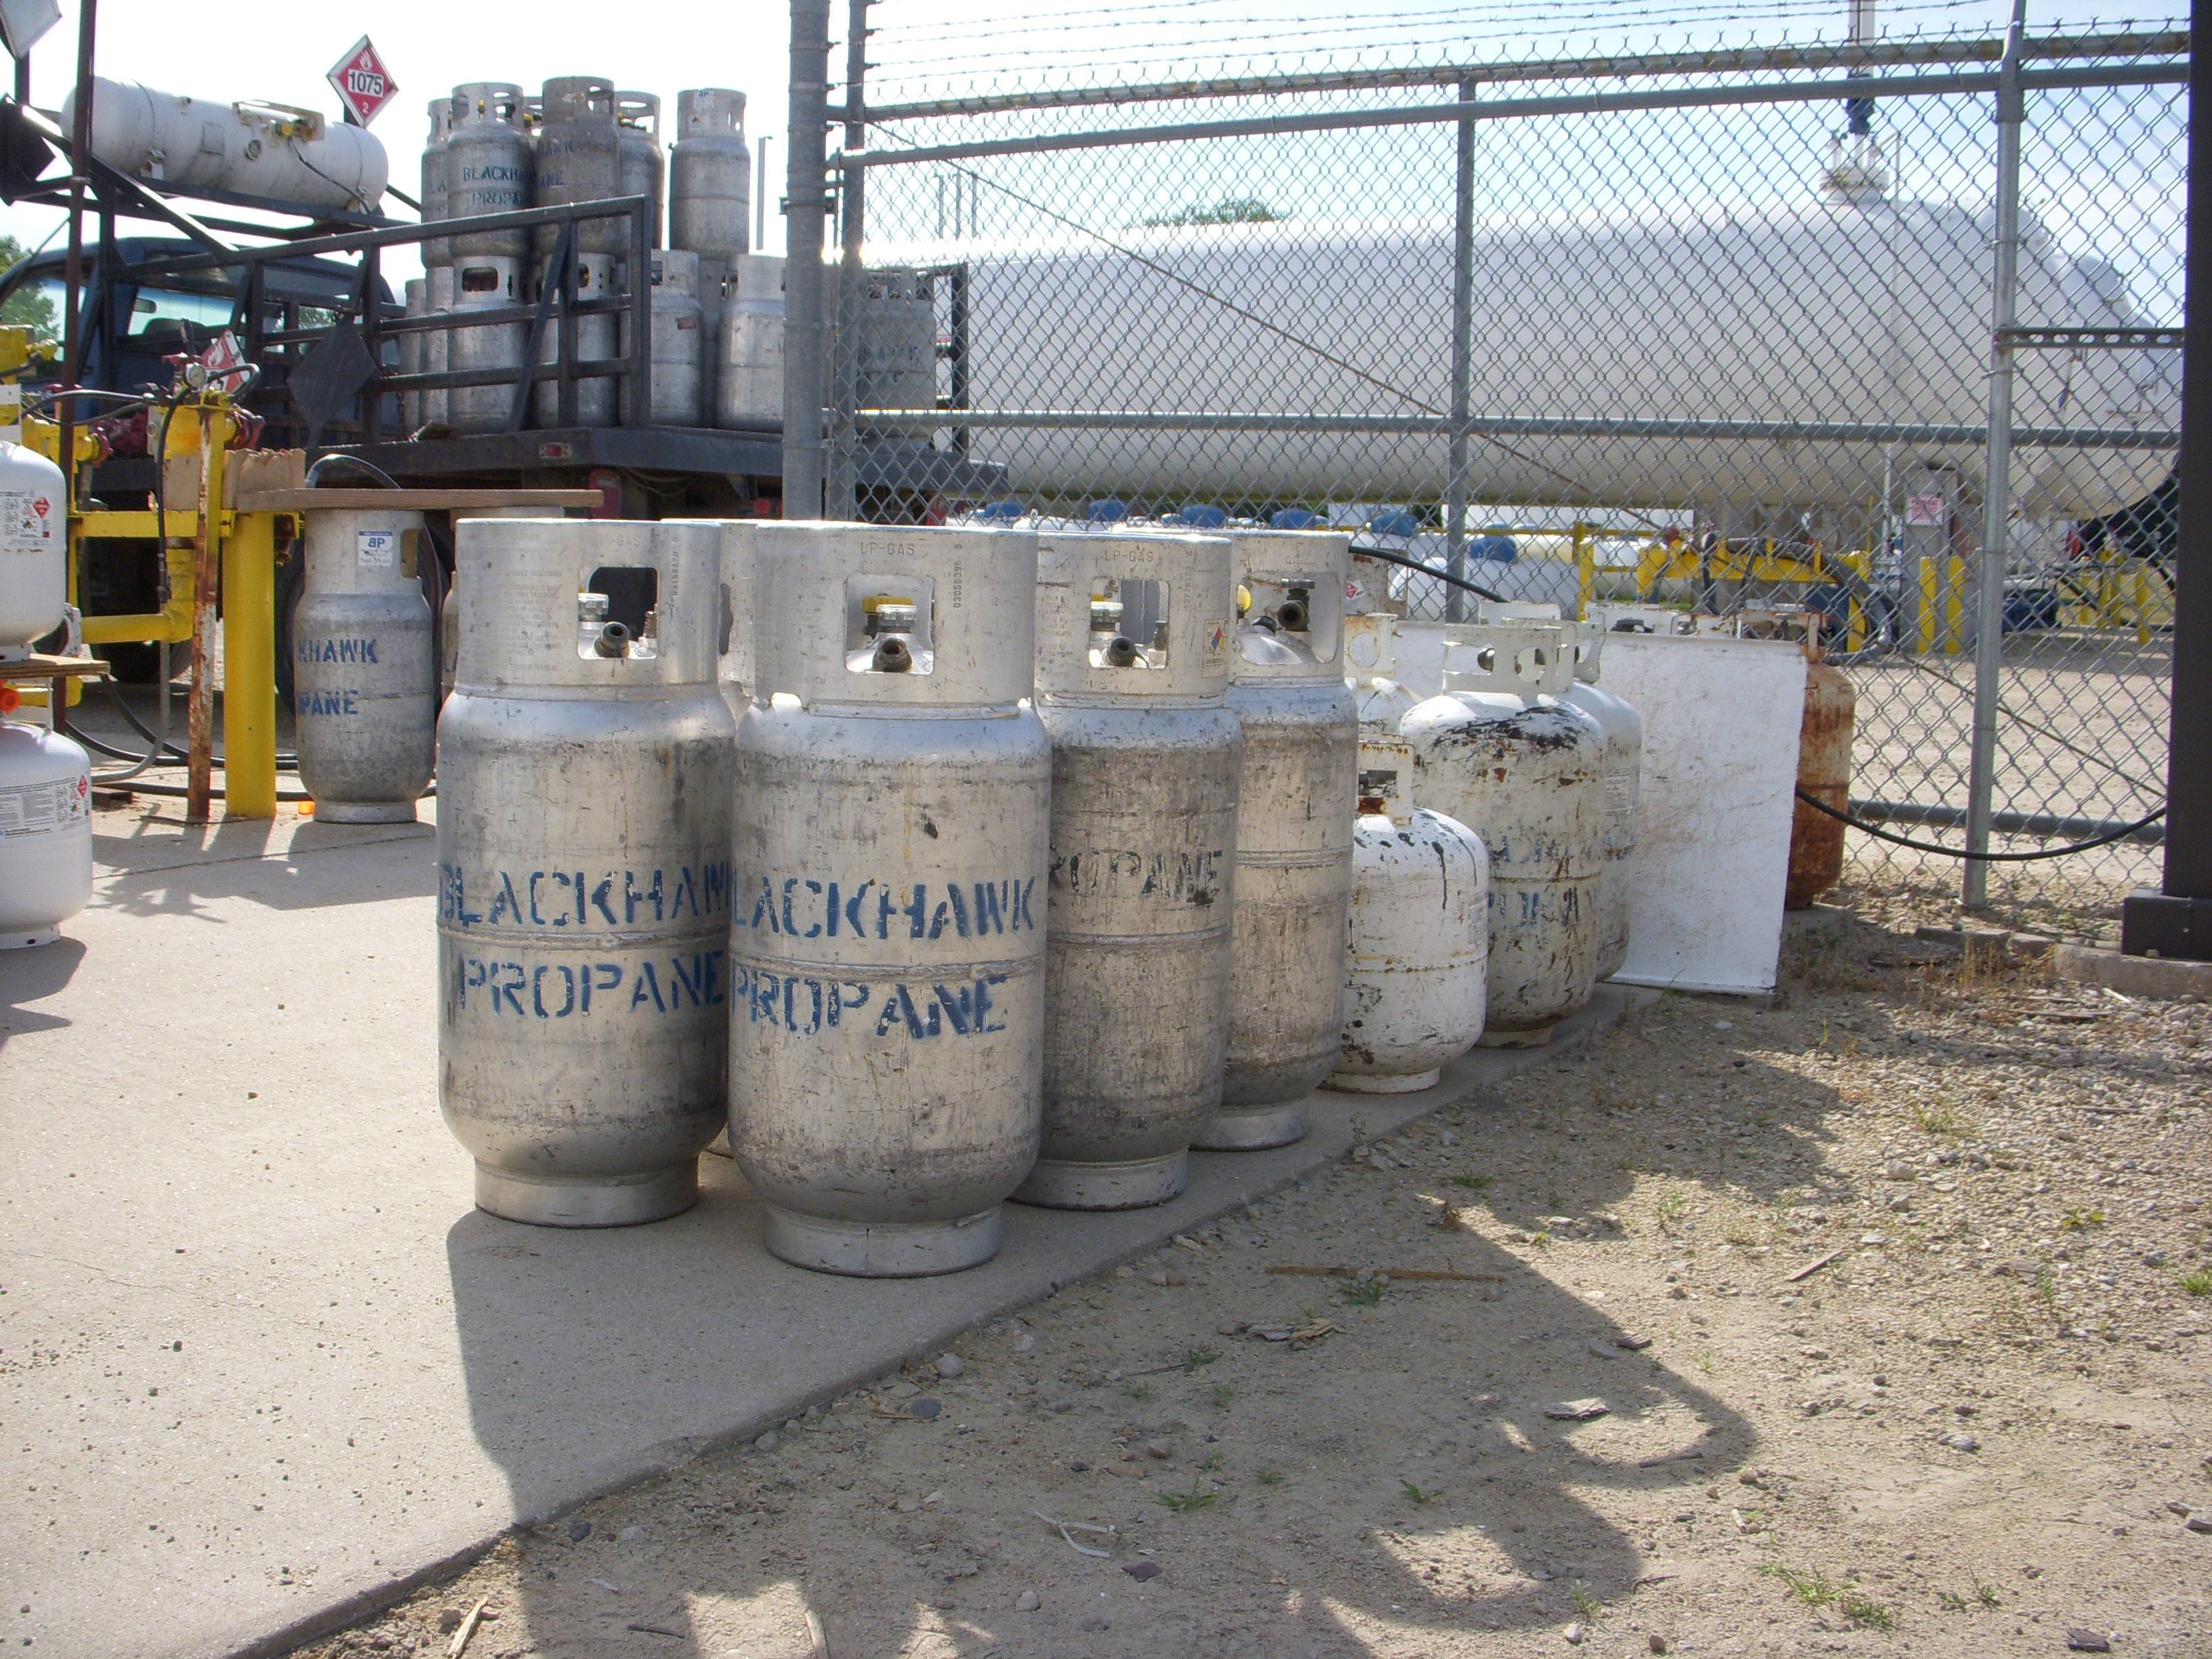 For industrial purpose commercial propane tanks and